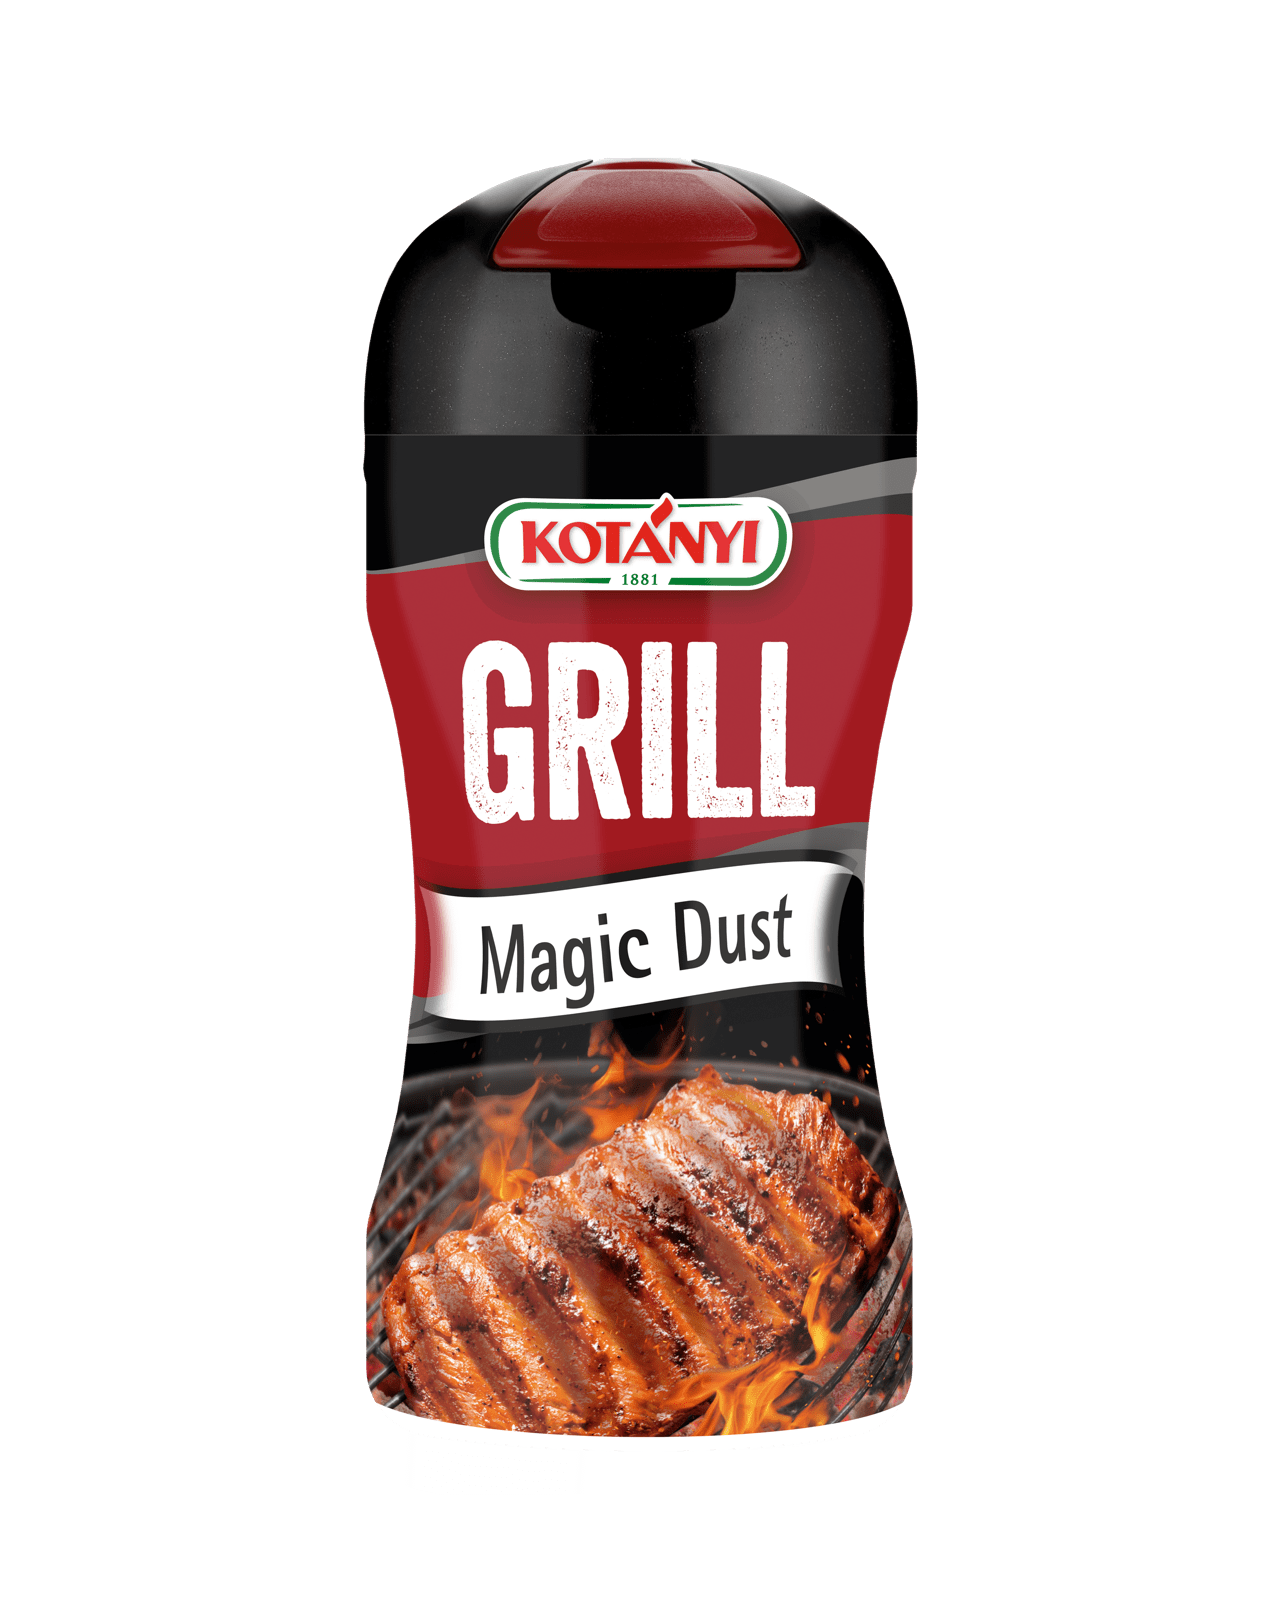 Kotányi Grillgewuerz Magic Dust in der 80g Streudose